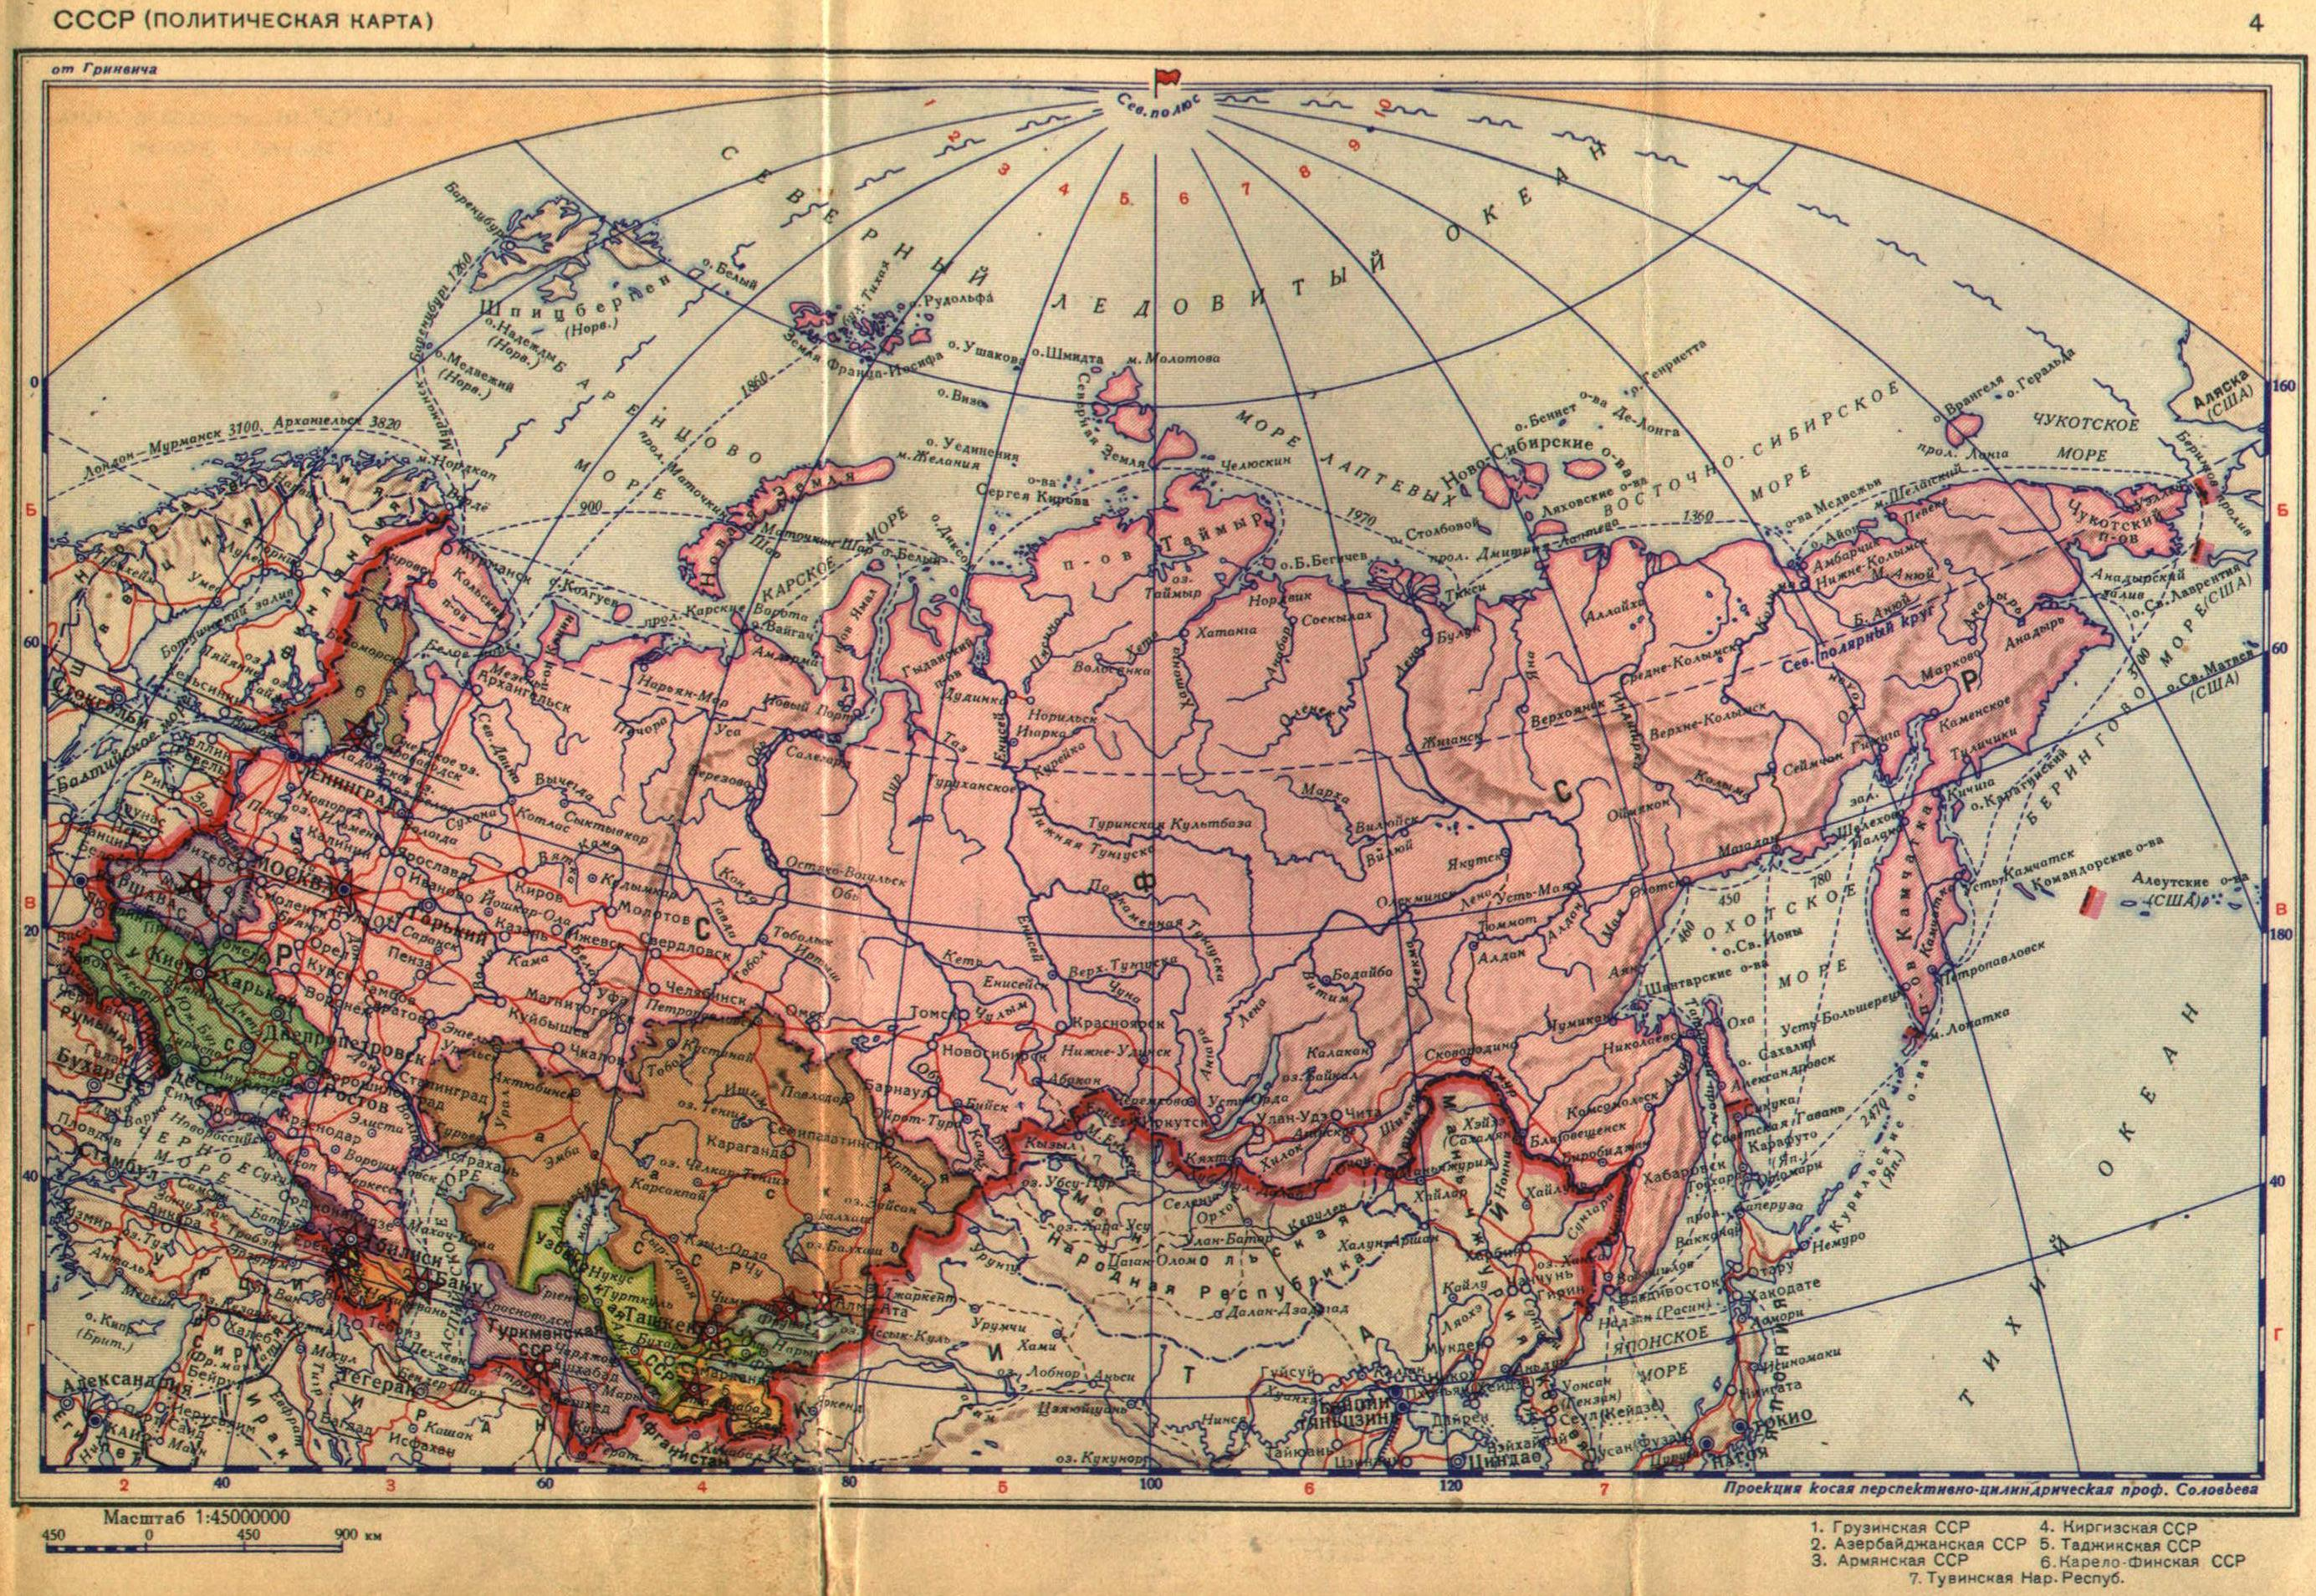 KFSSR on the map of USSR